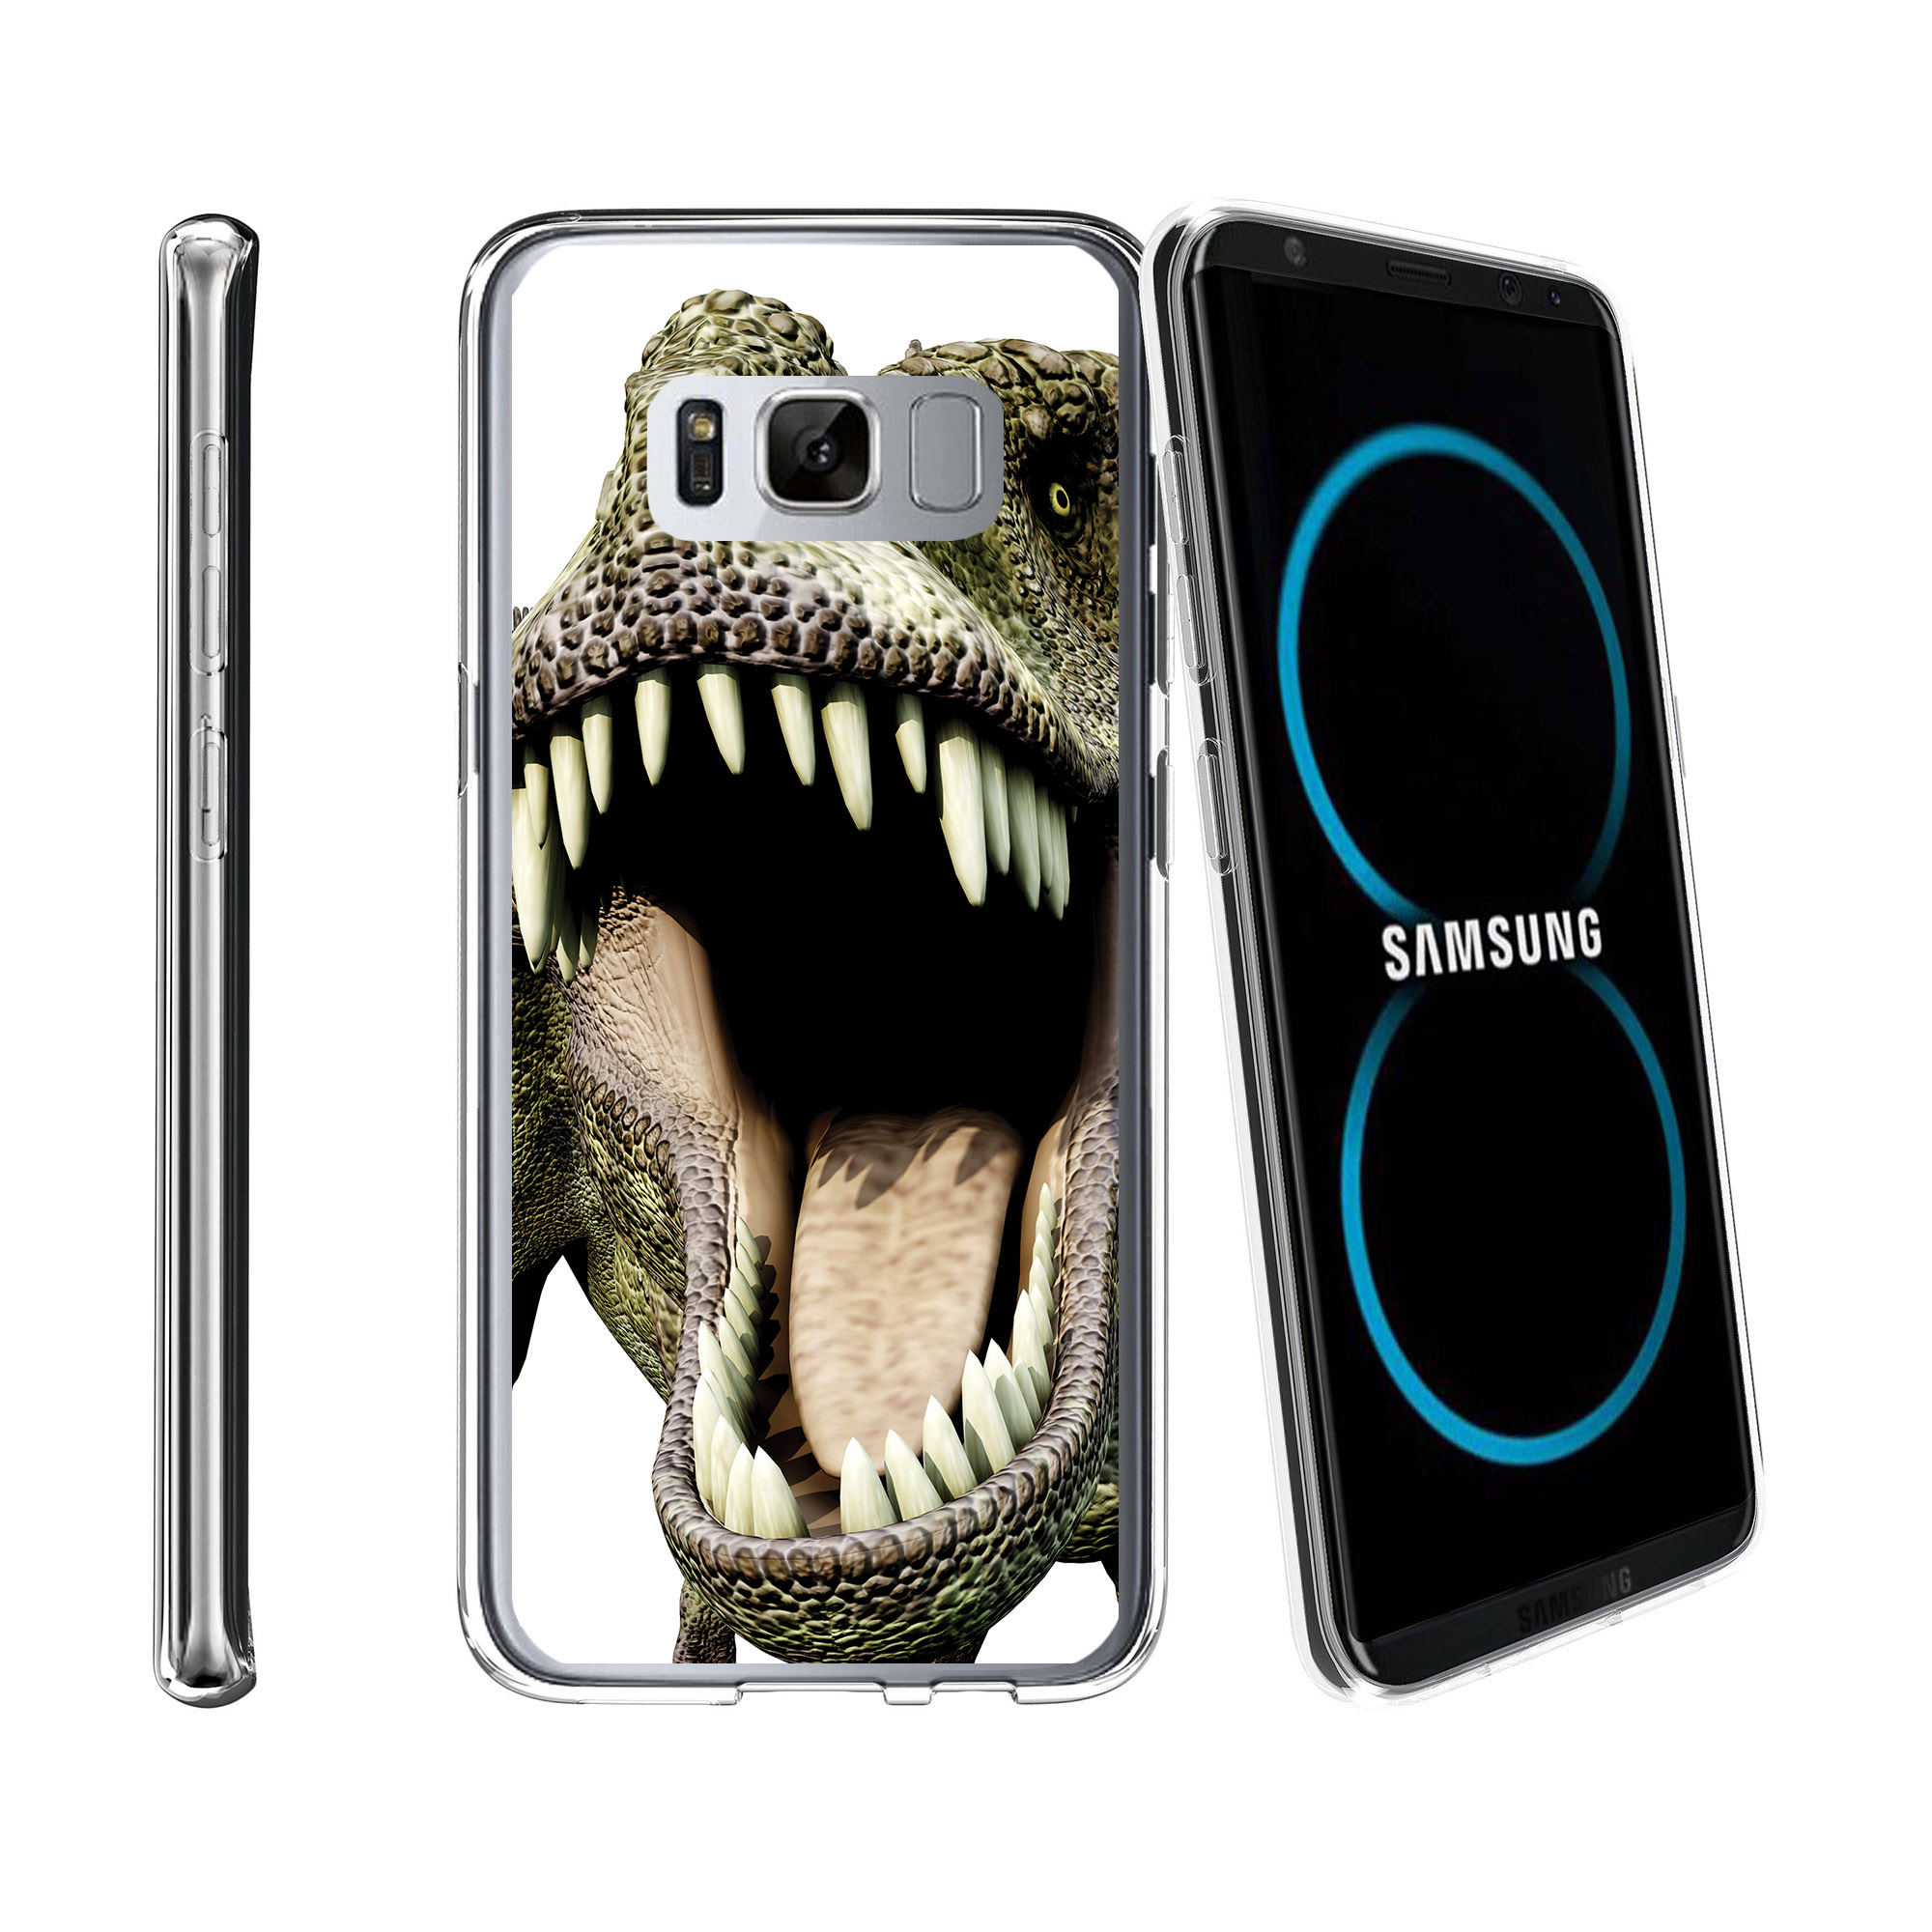 Case for Samsung Galaxy S8 Plus | Galaxy S8 Plus Transparent Silicone Case [ Flex Force ] Flexible Clear Case Dino Collection